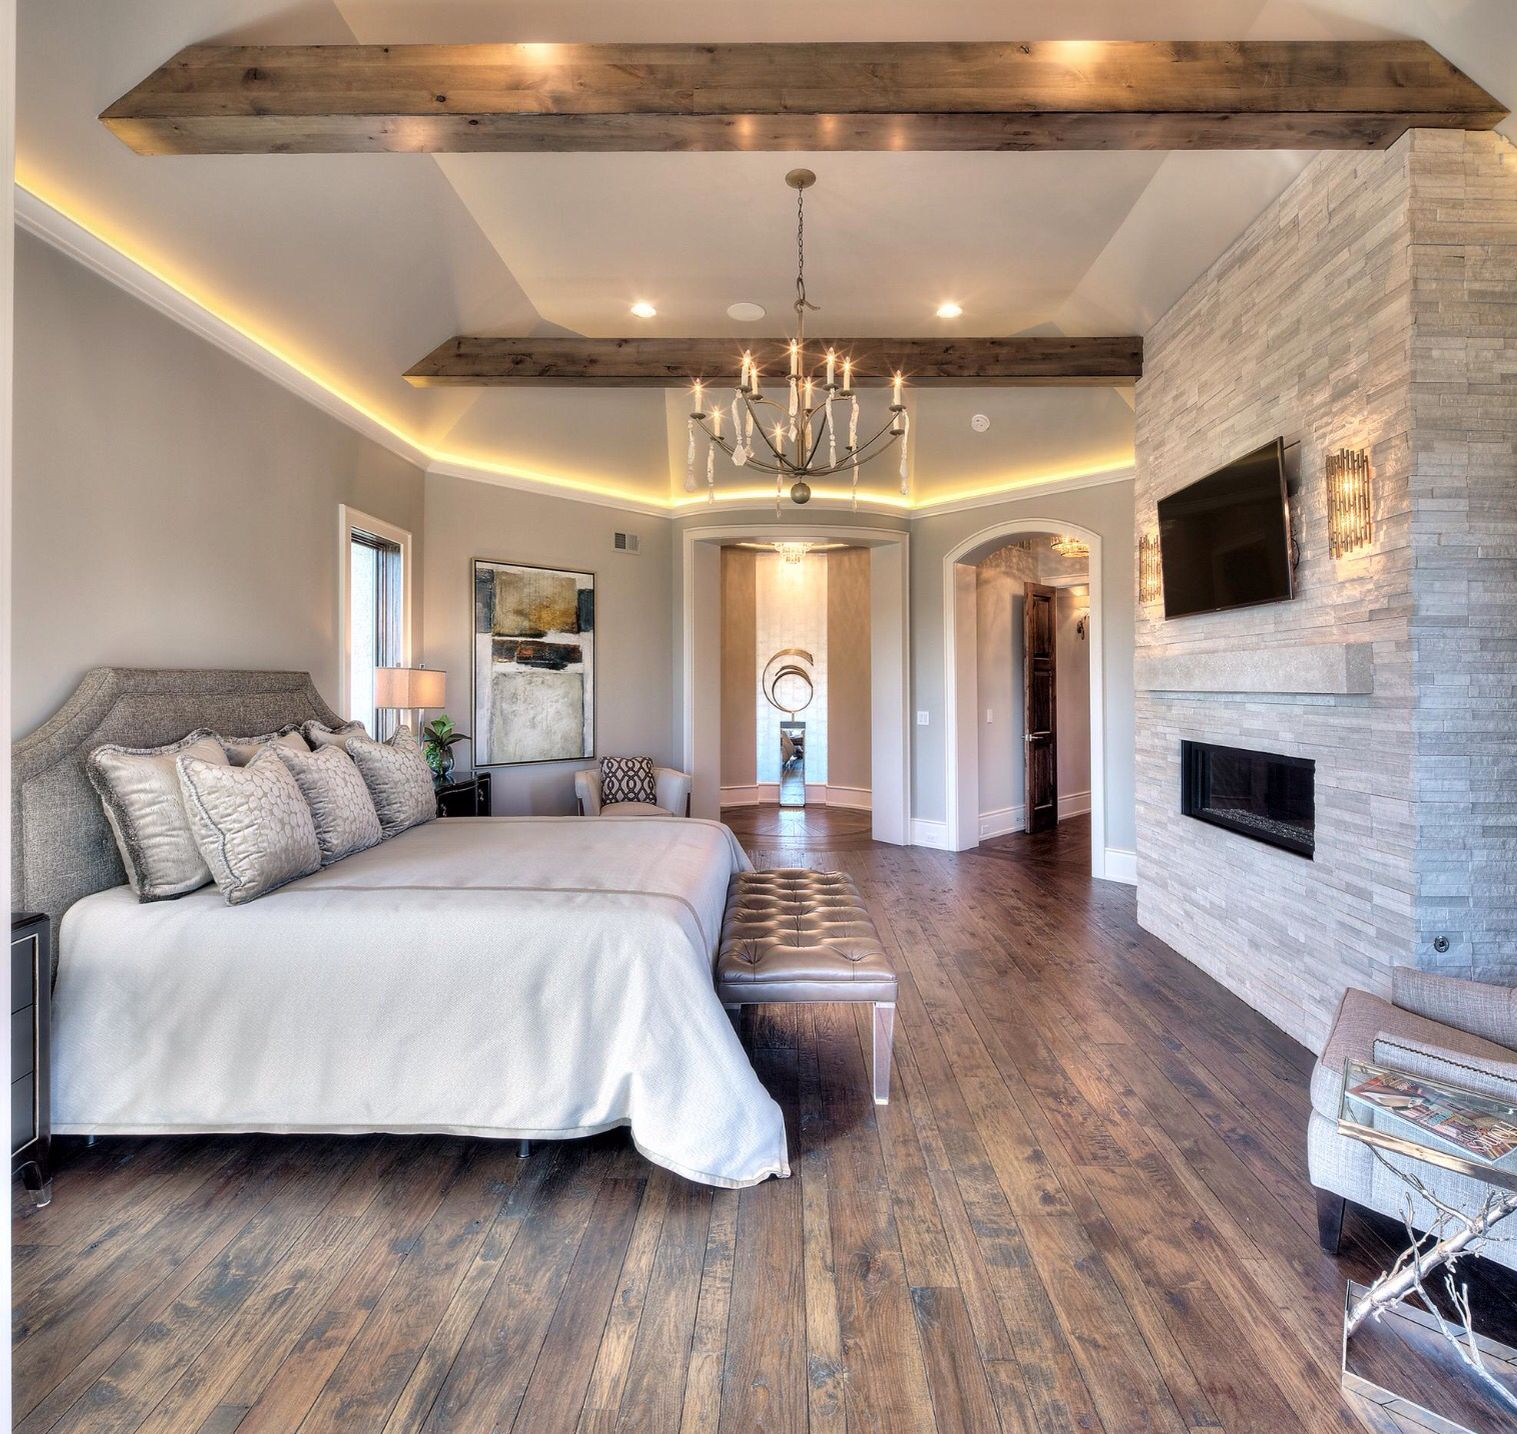 Master Bedroom - Wood Floors & Wood Beams